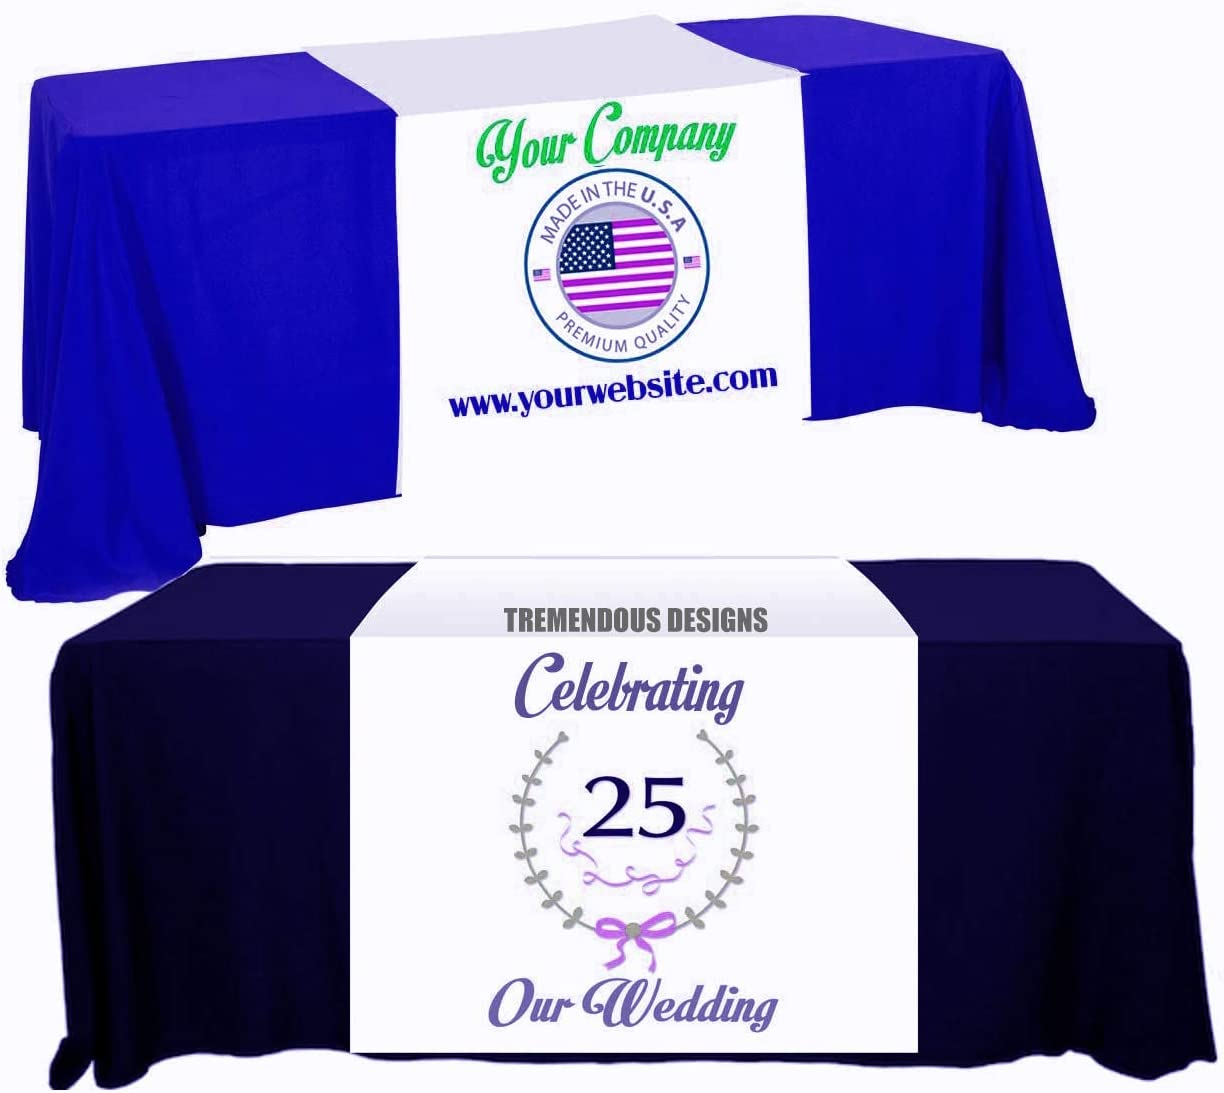 Customize Table Runner Cloth Using Directly managed store your and Busine for Logo Text Max 78% OFF